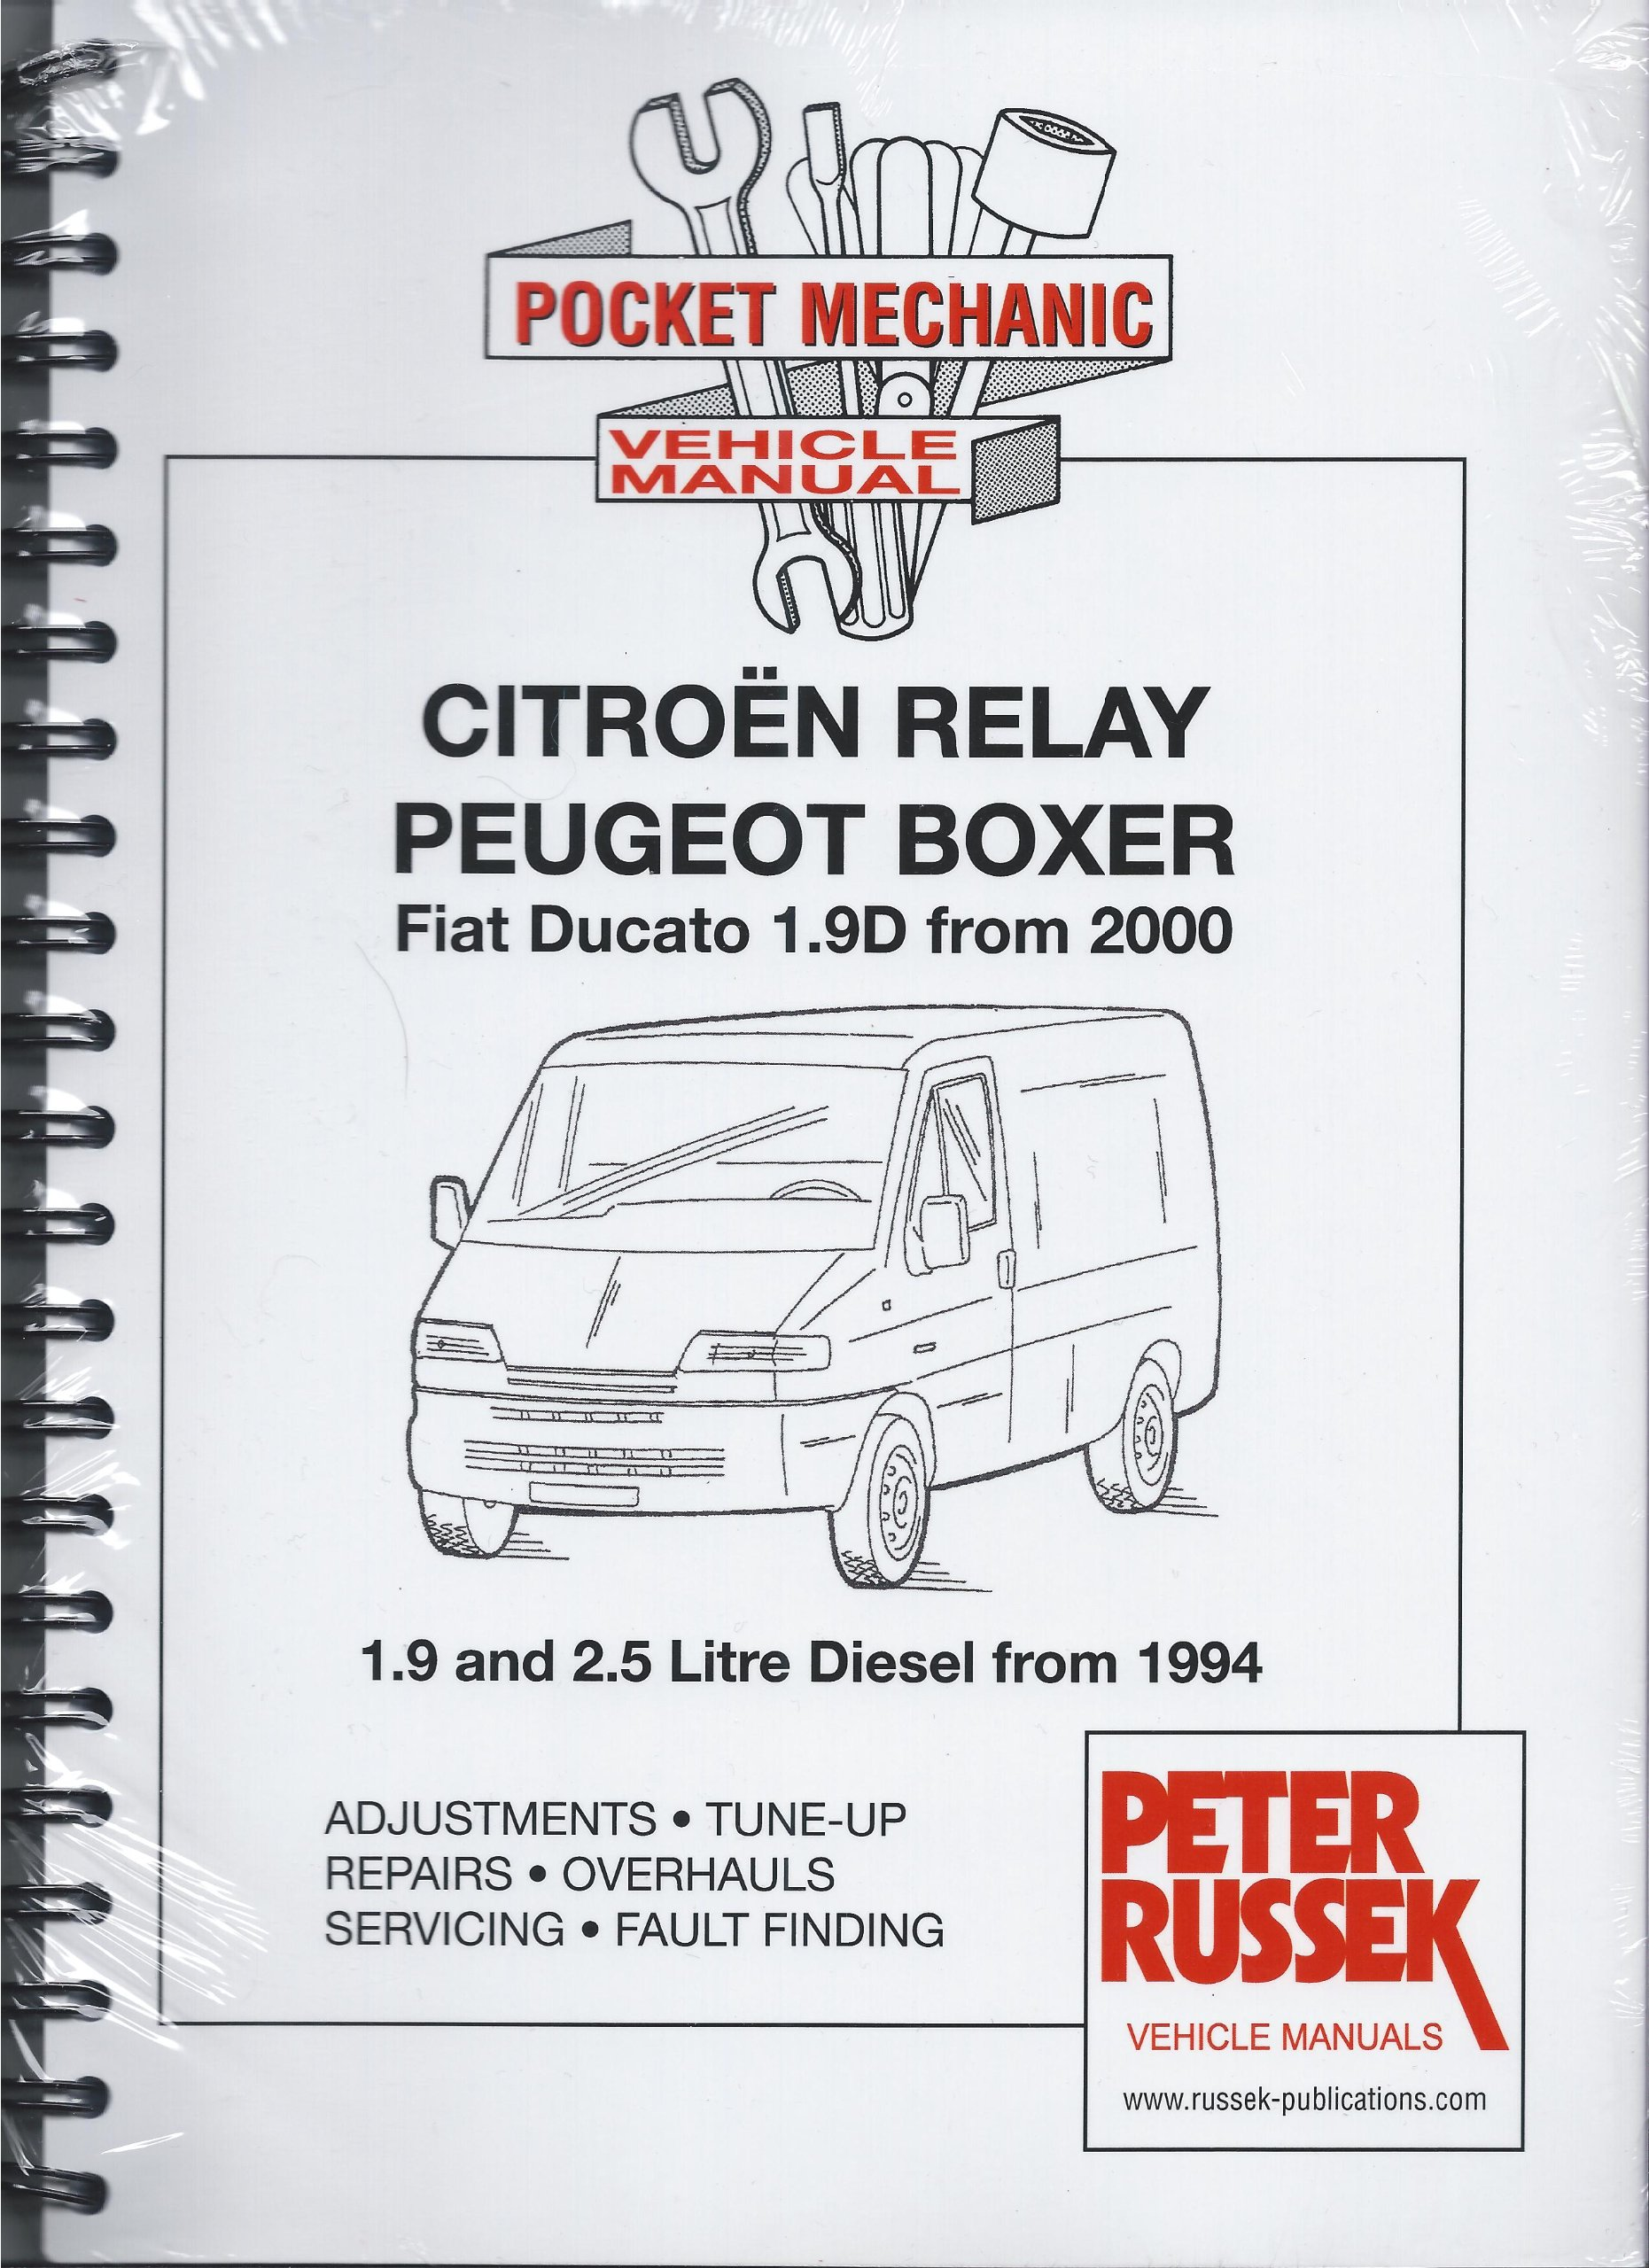 Fiat Ducato Central Locking Wiring Diagram Library Diagrams Citroen Relay Peugeot Boxer 19 25 Diesel From 94